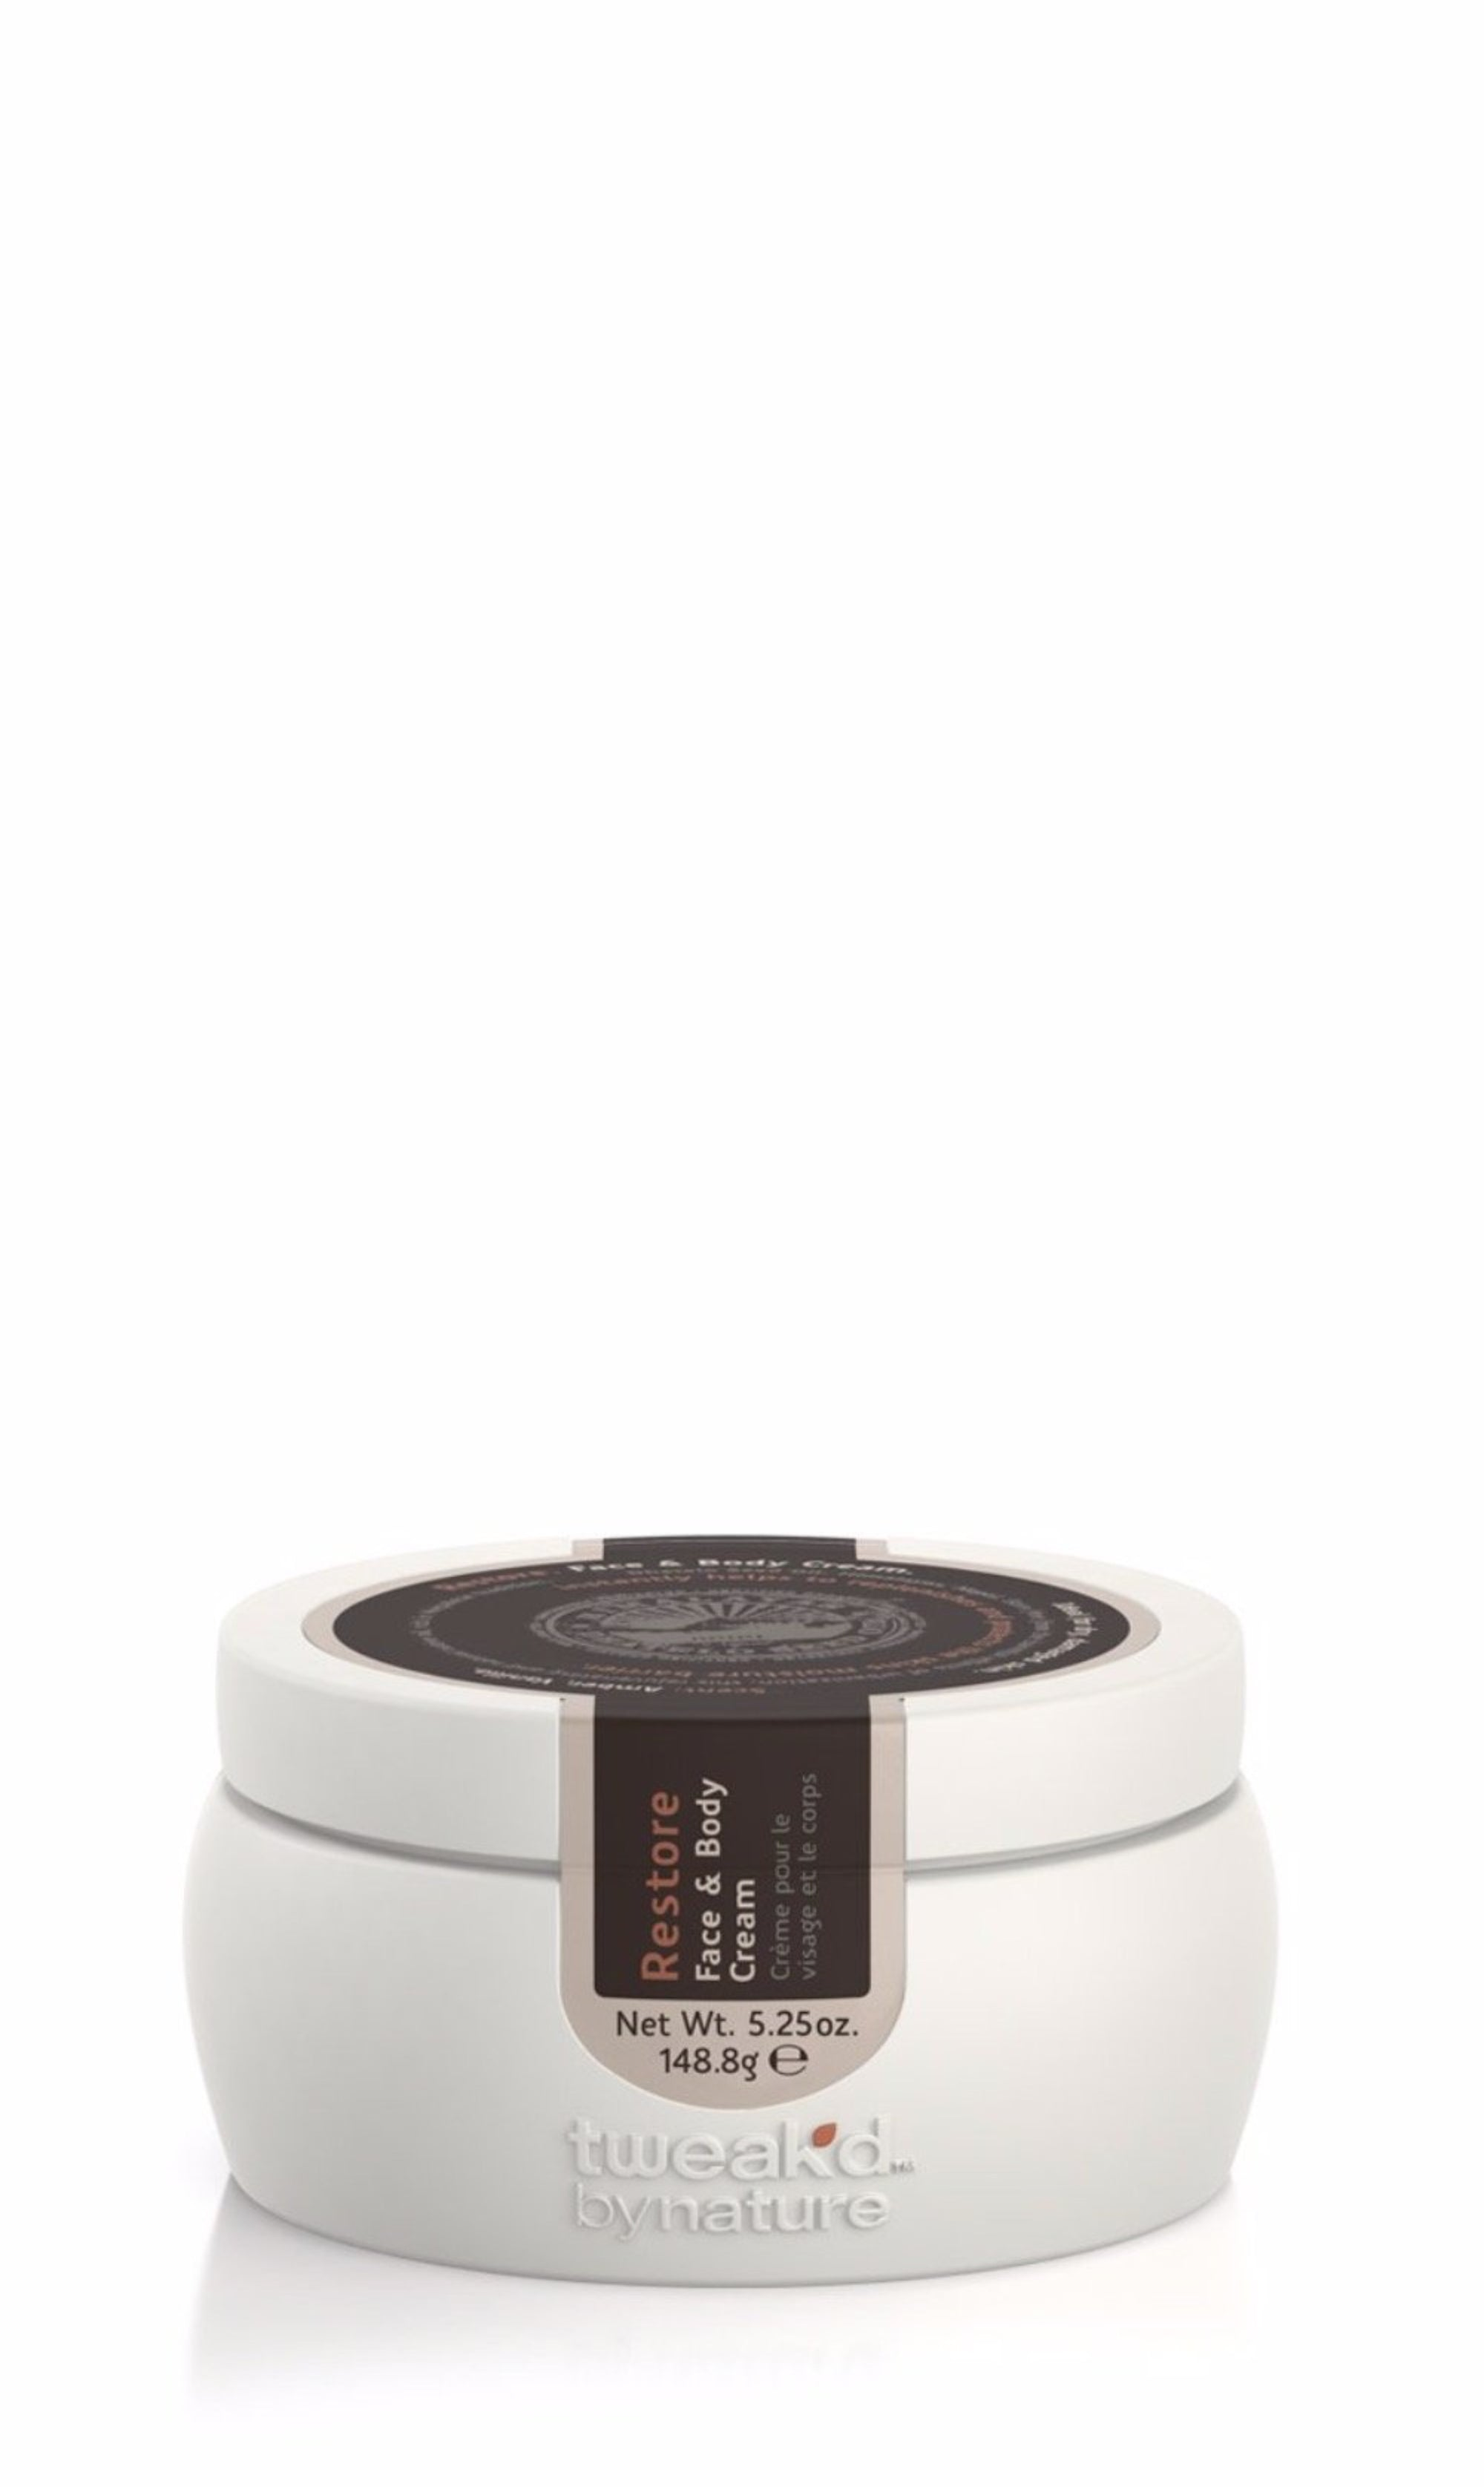 Dhatelo Restore Amber Vanilla All-Purpose Rescue Cream 148.8g (5.25oz)